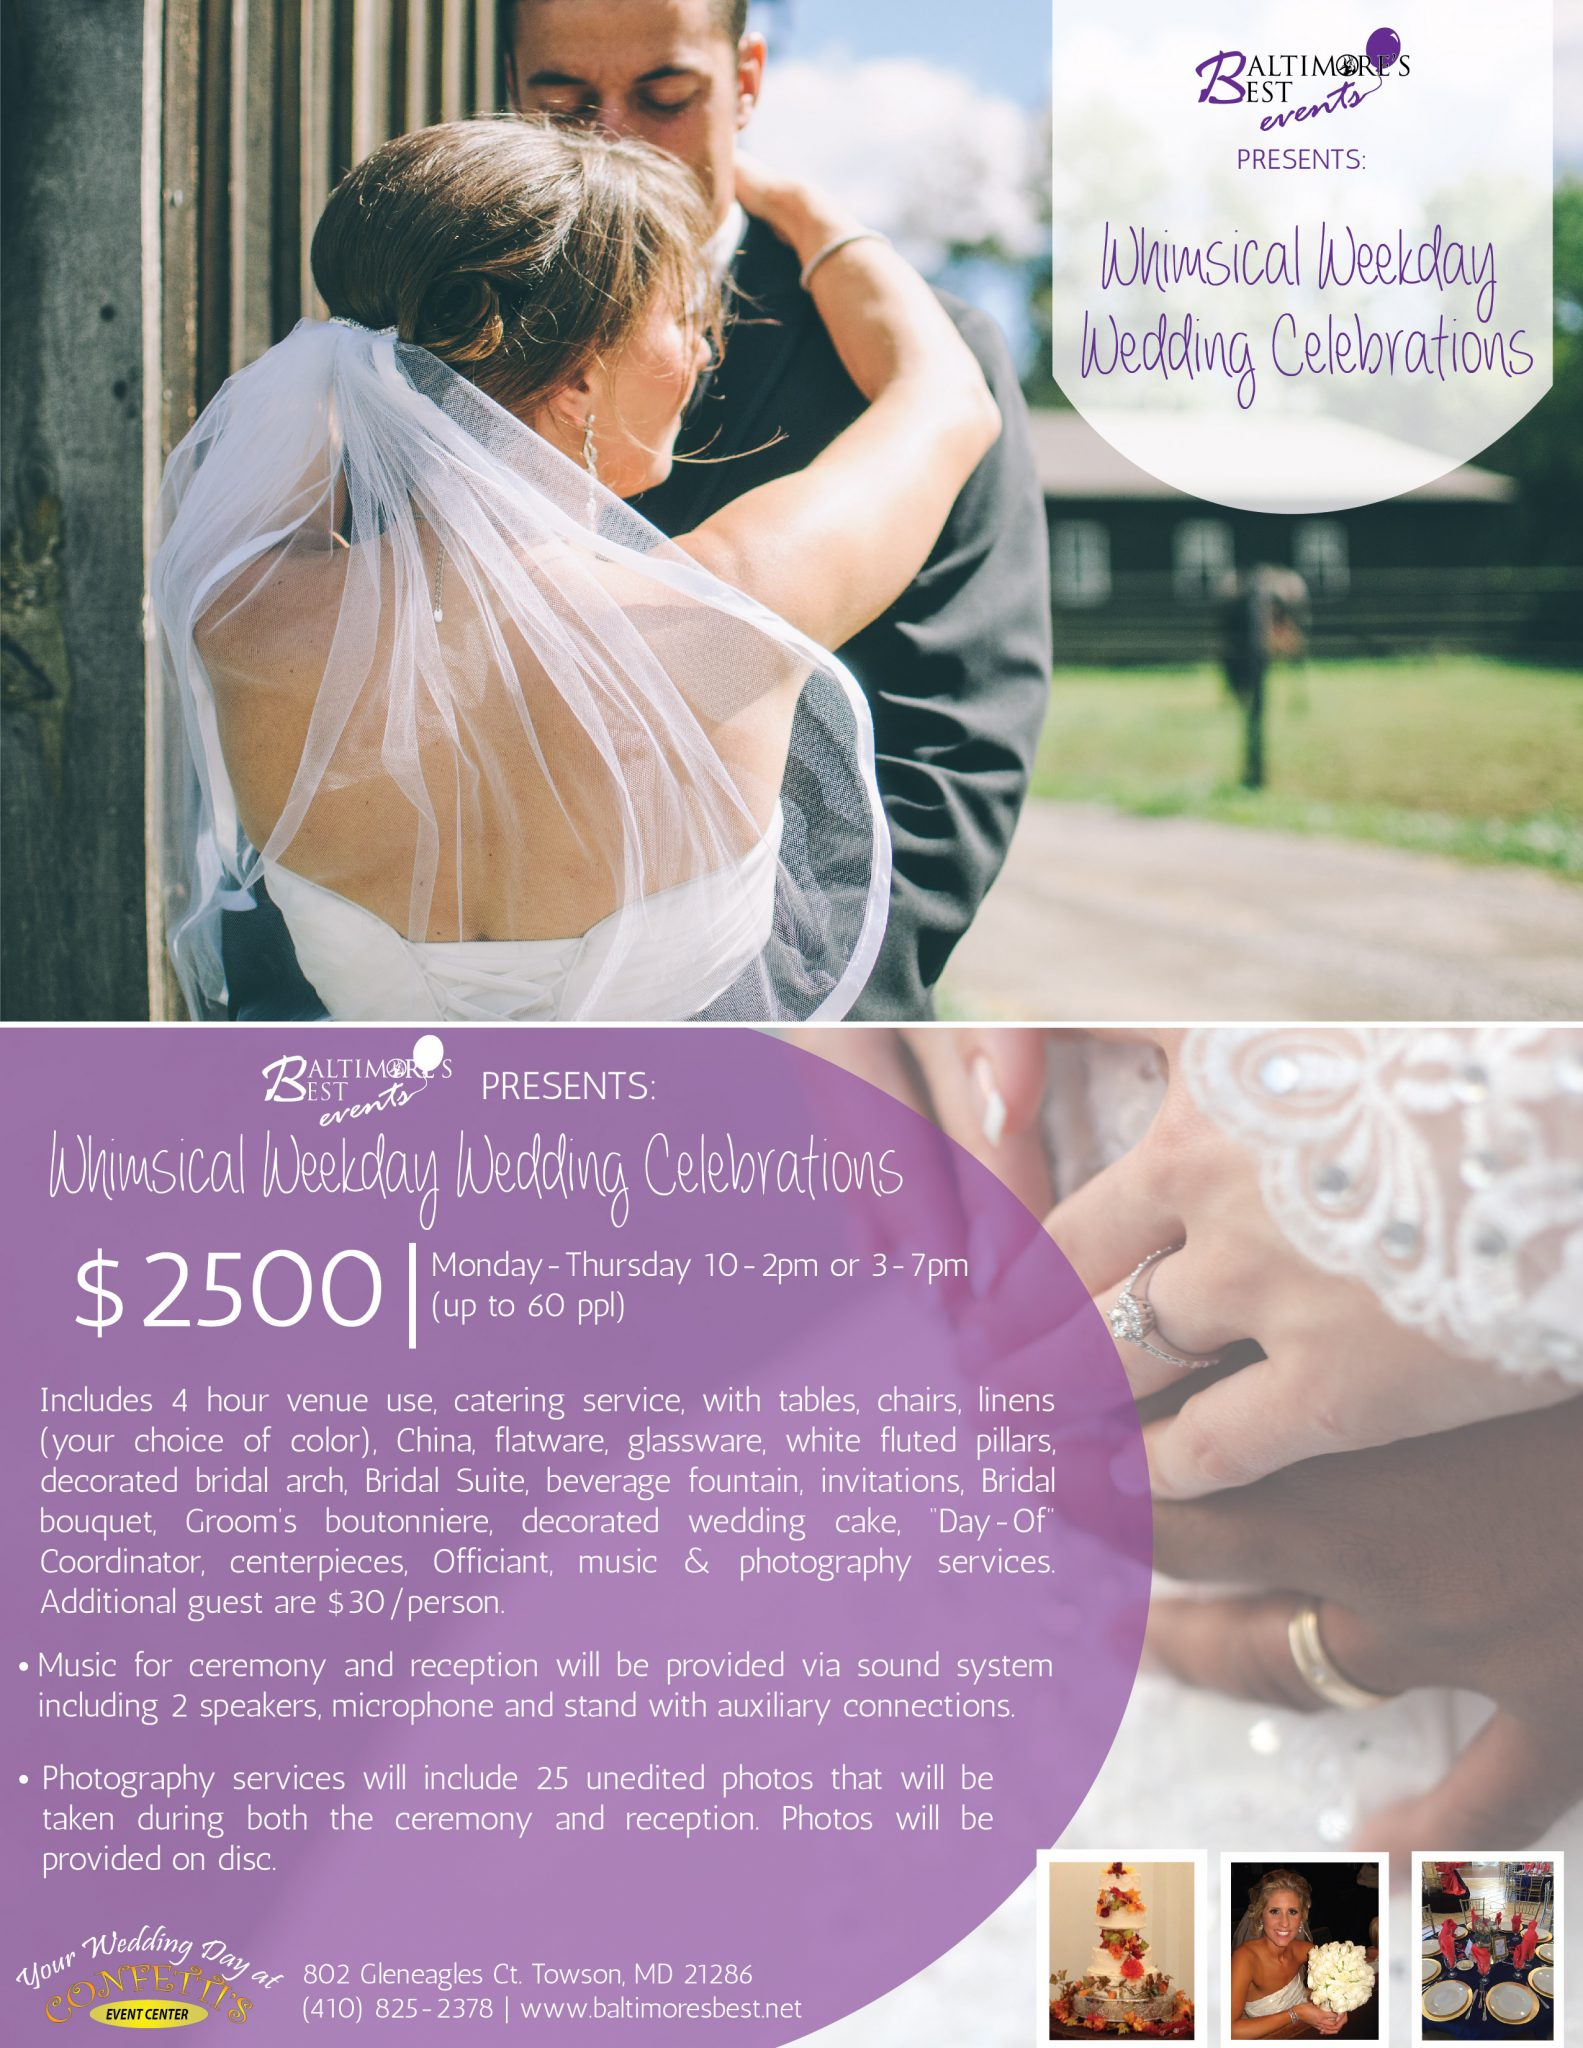 whimsical-weekday-wedding-celebration-small-banner-ad-05